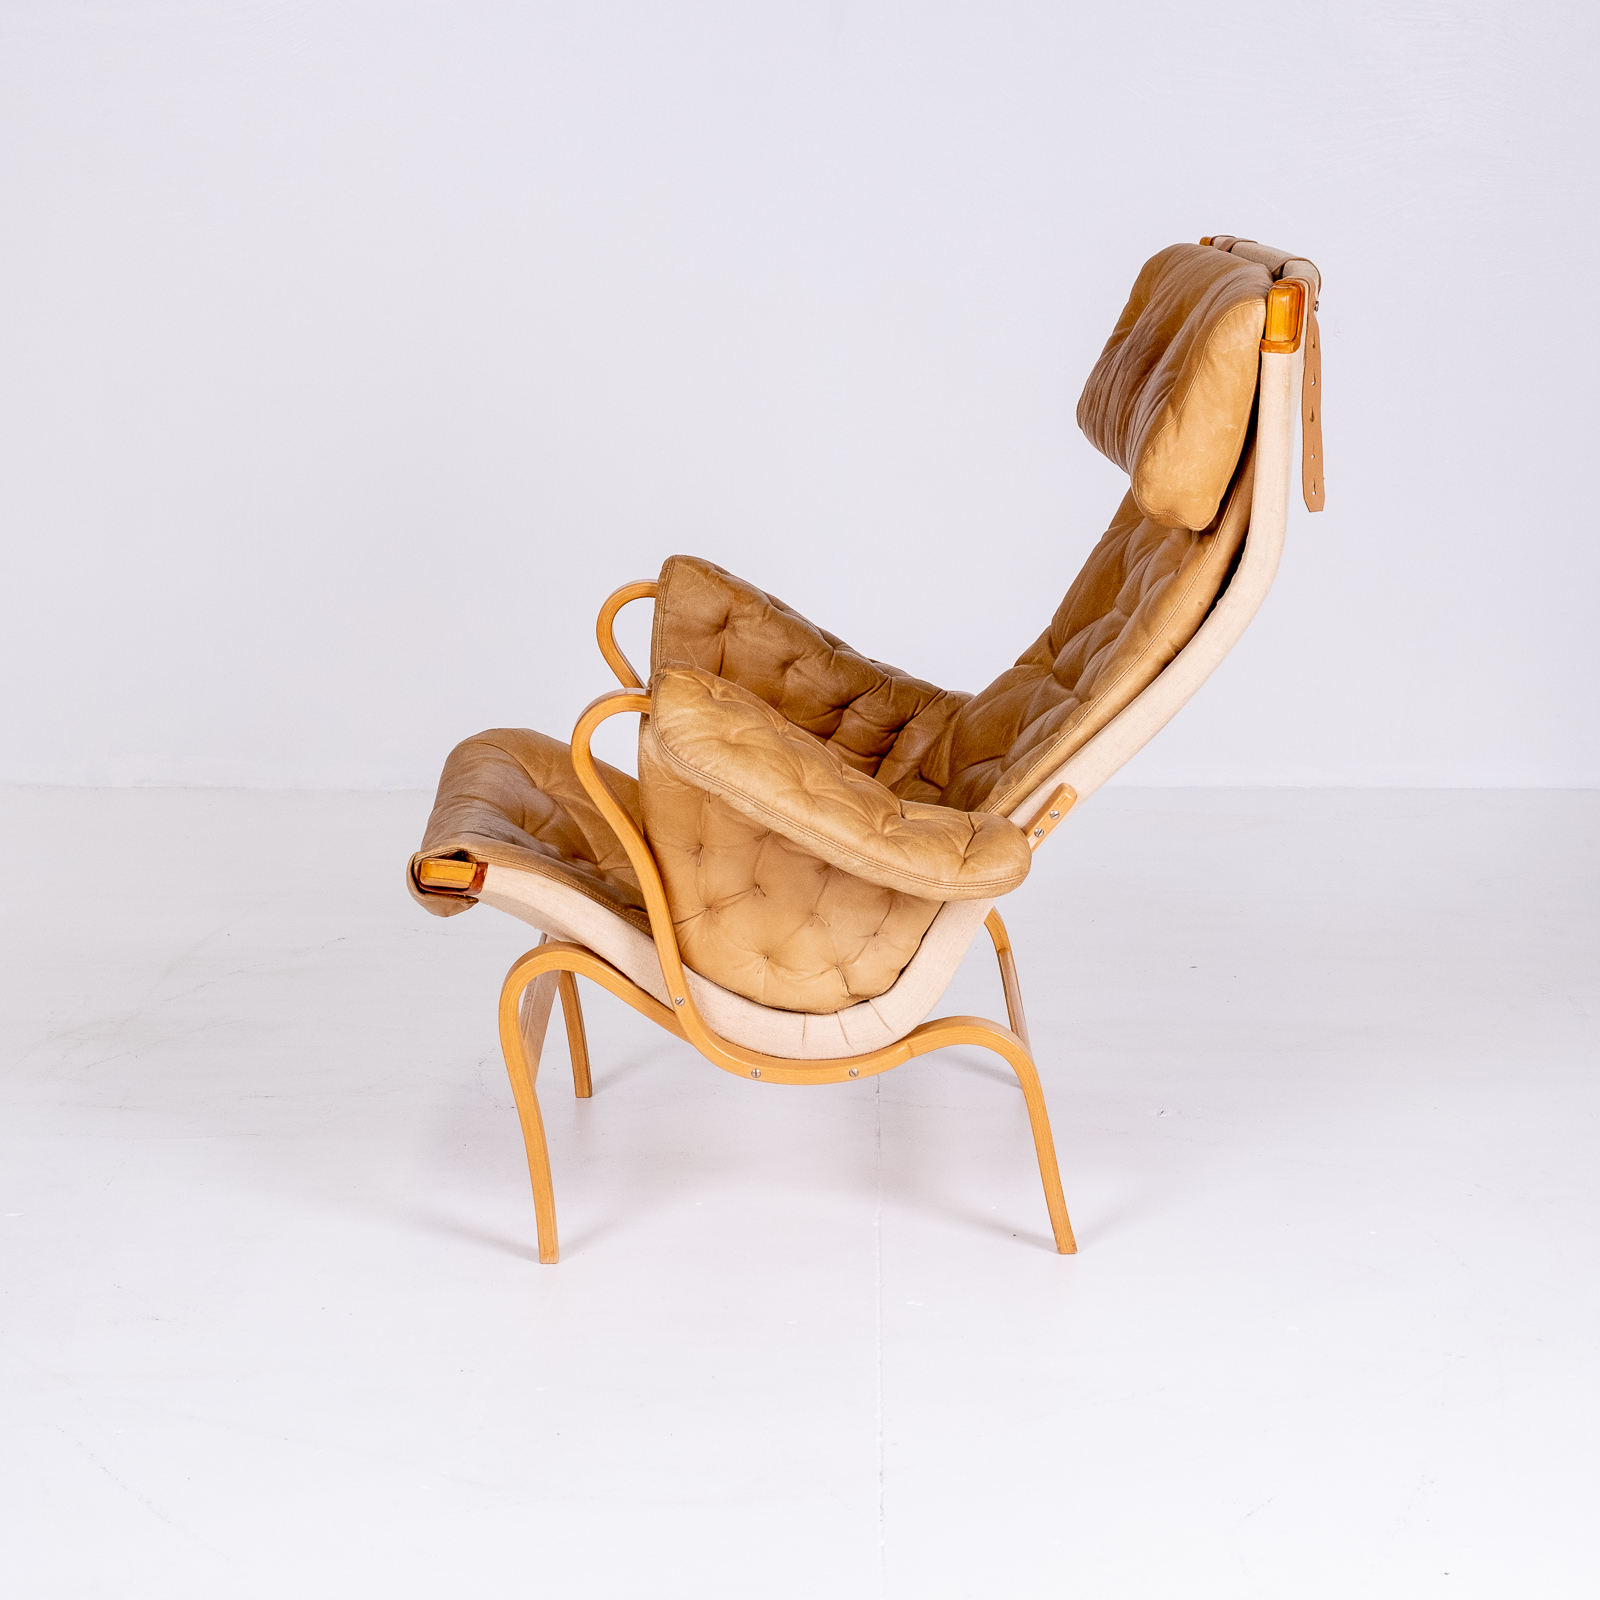 Pernilla 69 Chair By Bruno Mathsson For Dux, 1960s, Sweden 02